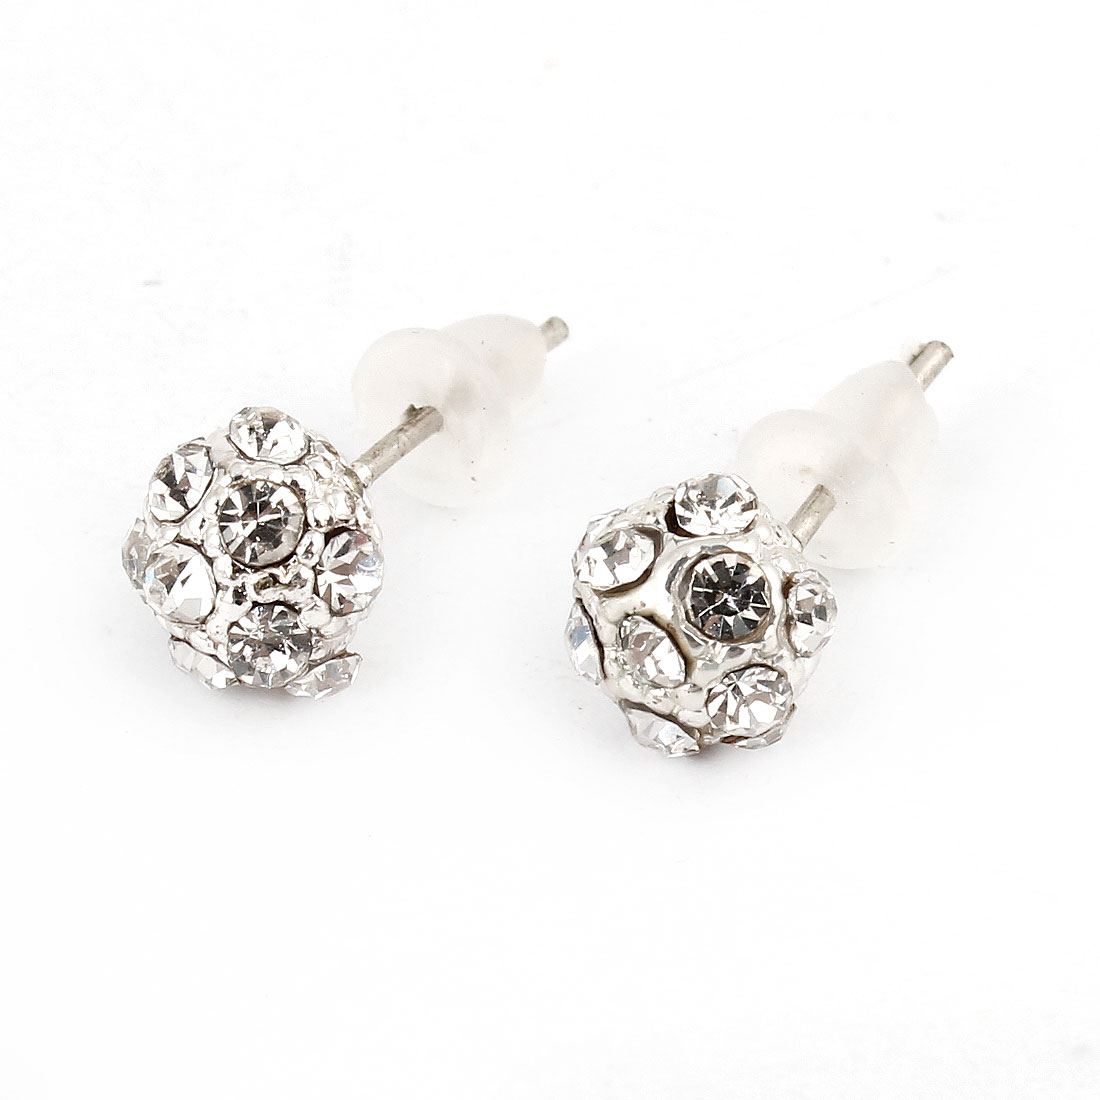 Pair Silver Tone Rhinestone Accent Round Stud Earrings for Ladies